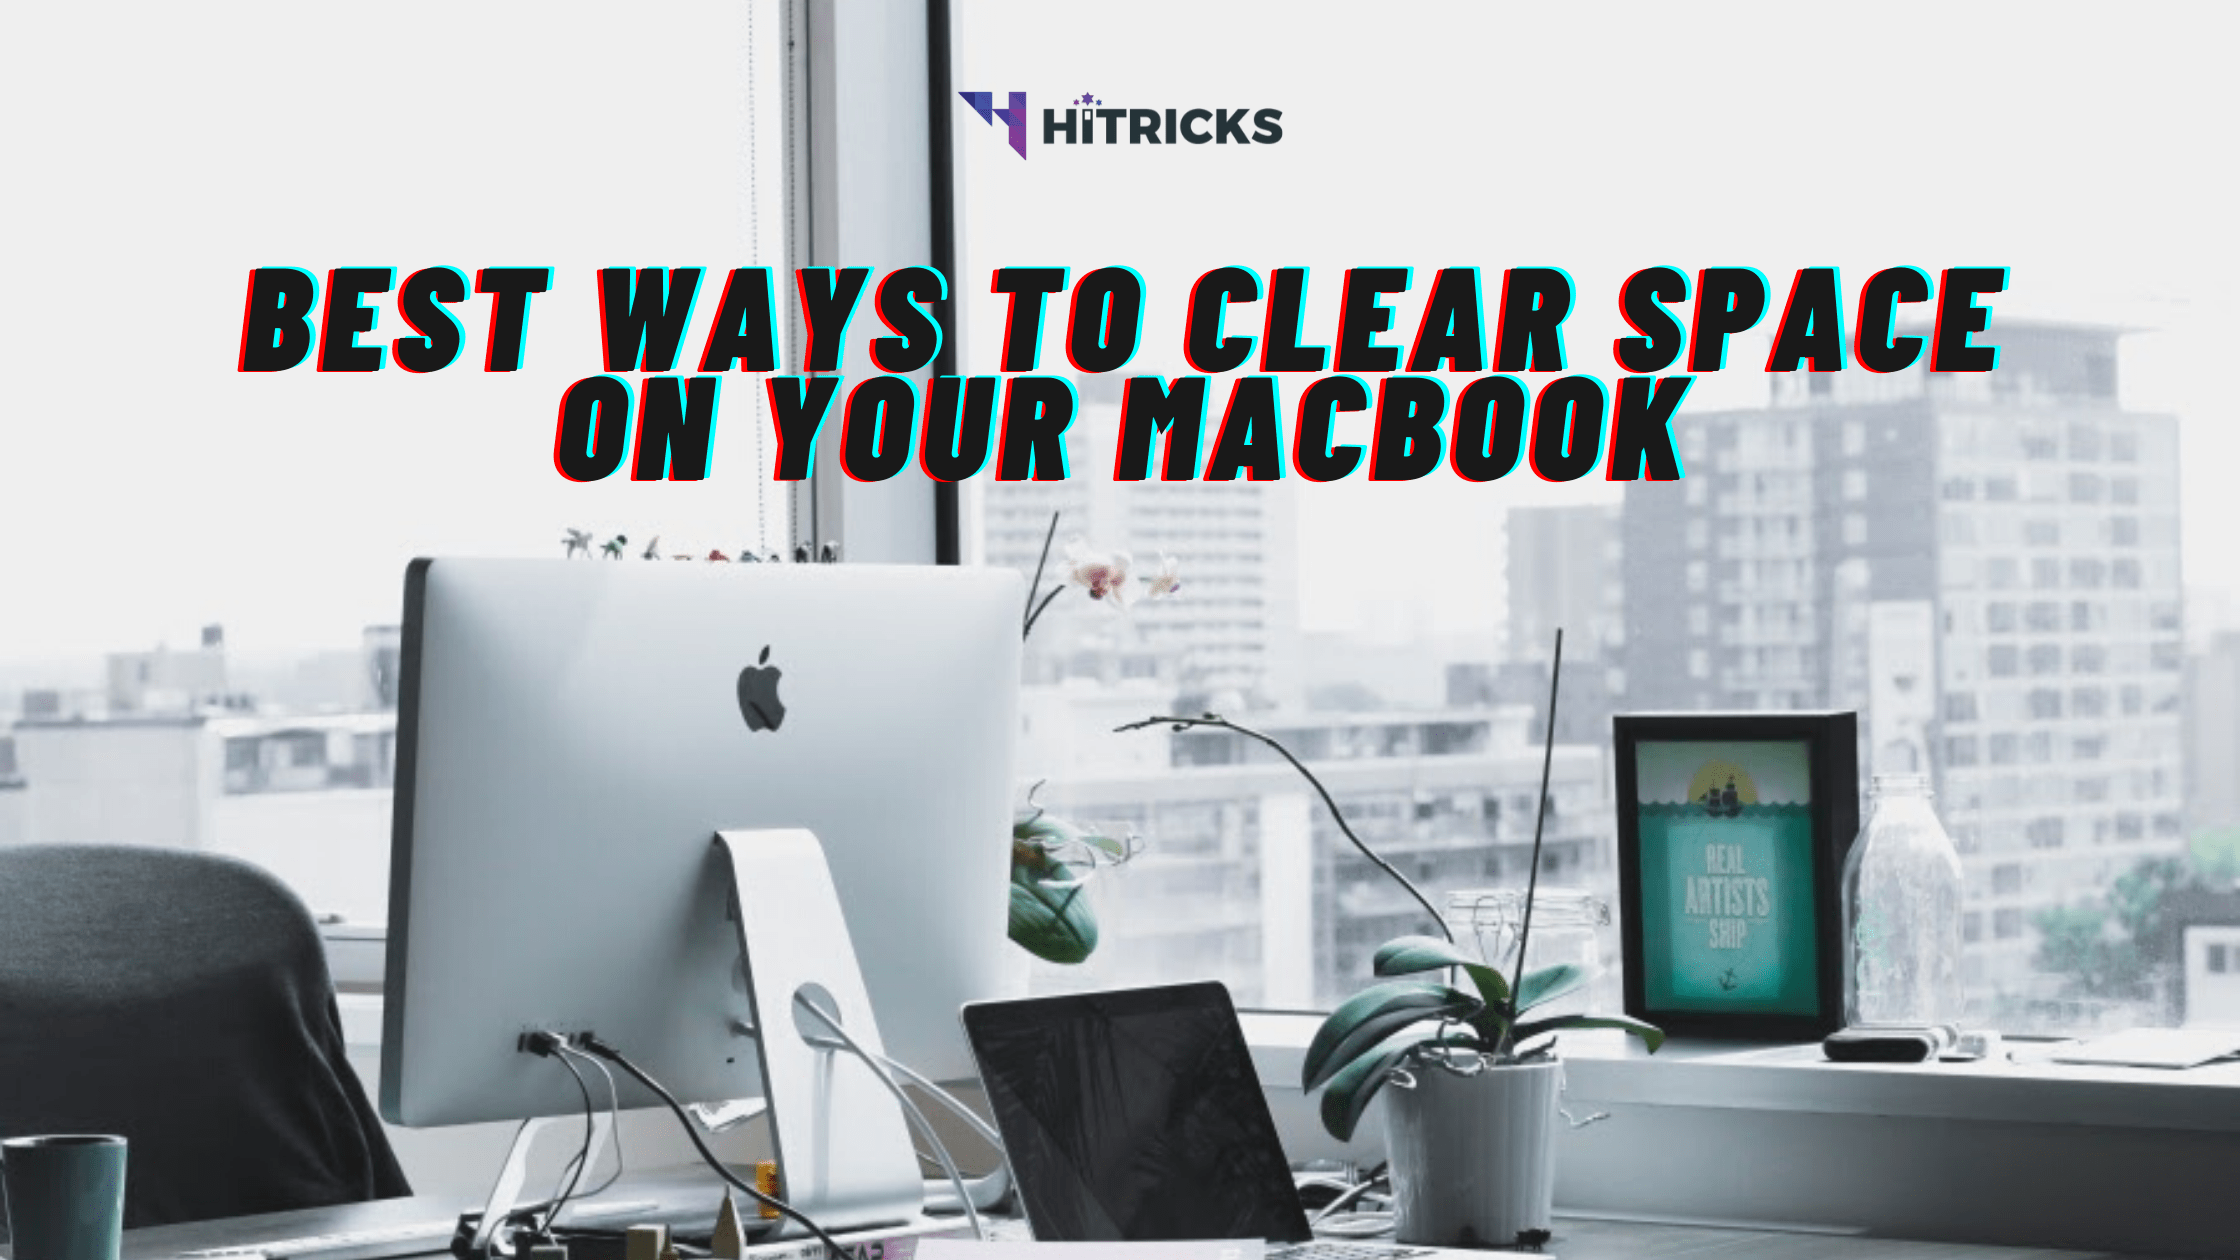 Best Ways To Clear Space On Your Mac